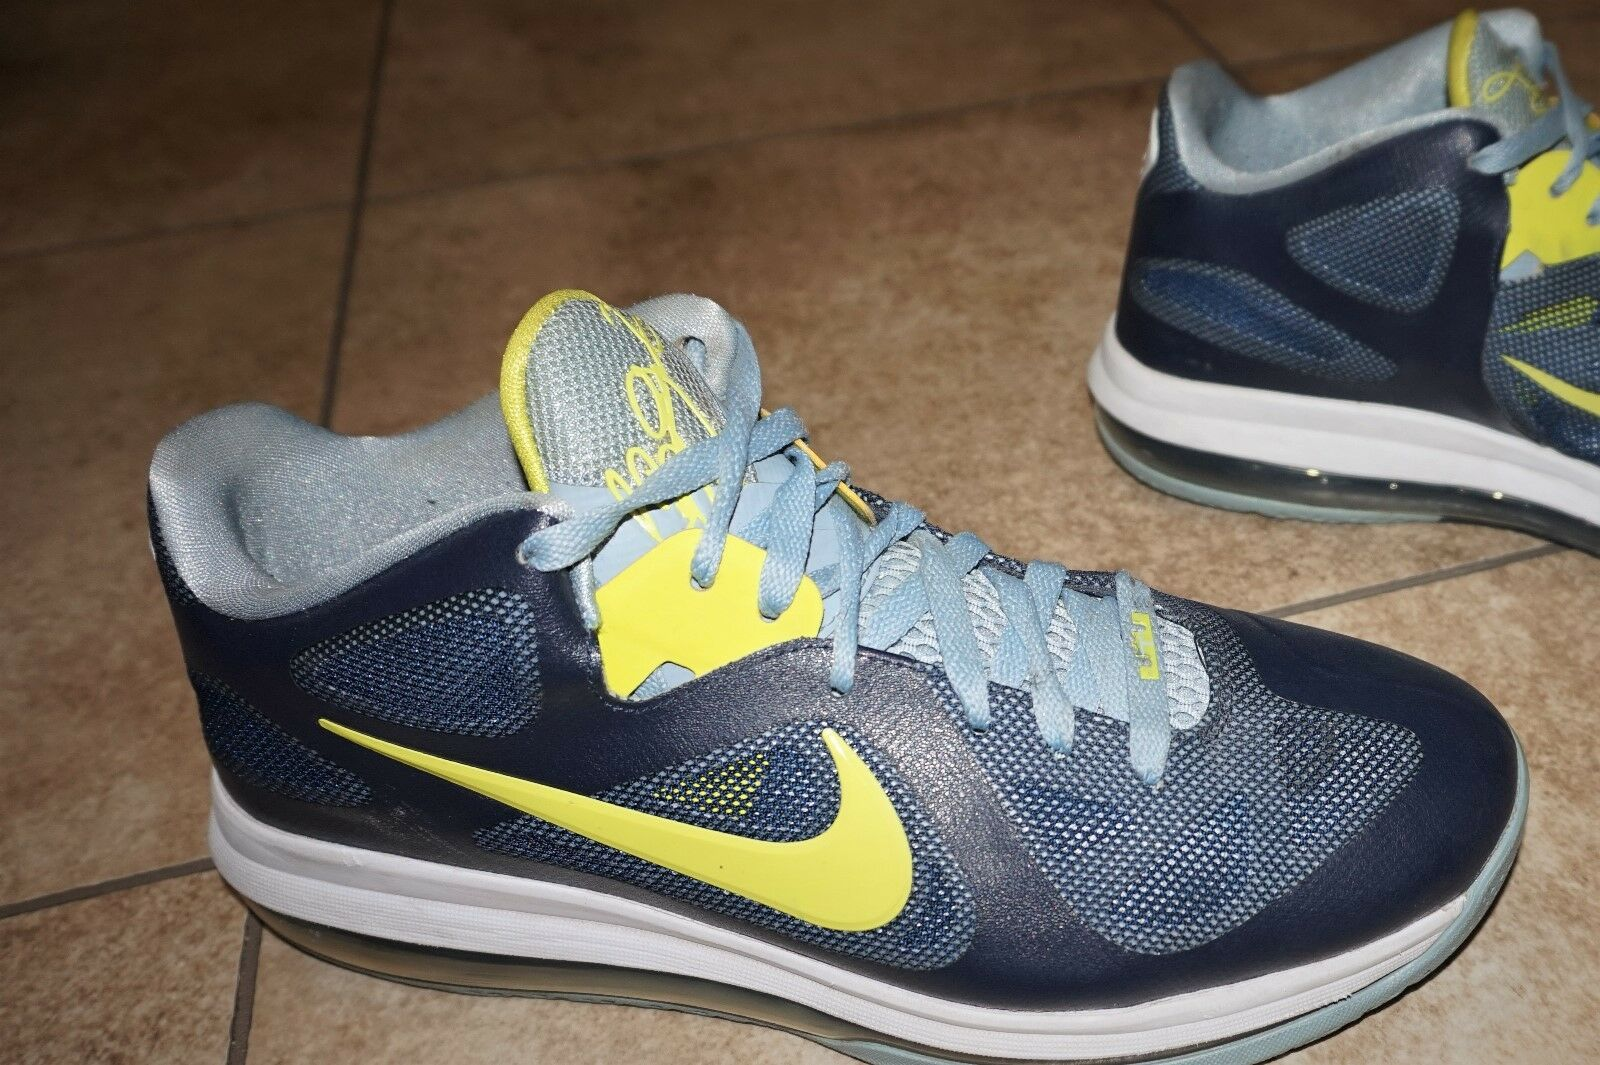 Nike Lebron 9 Low Basketball RunningTraining Easter Obsidian Shoes Men's Size 10